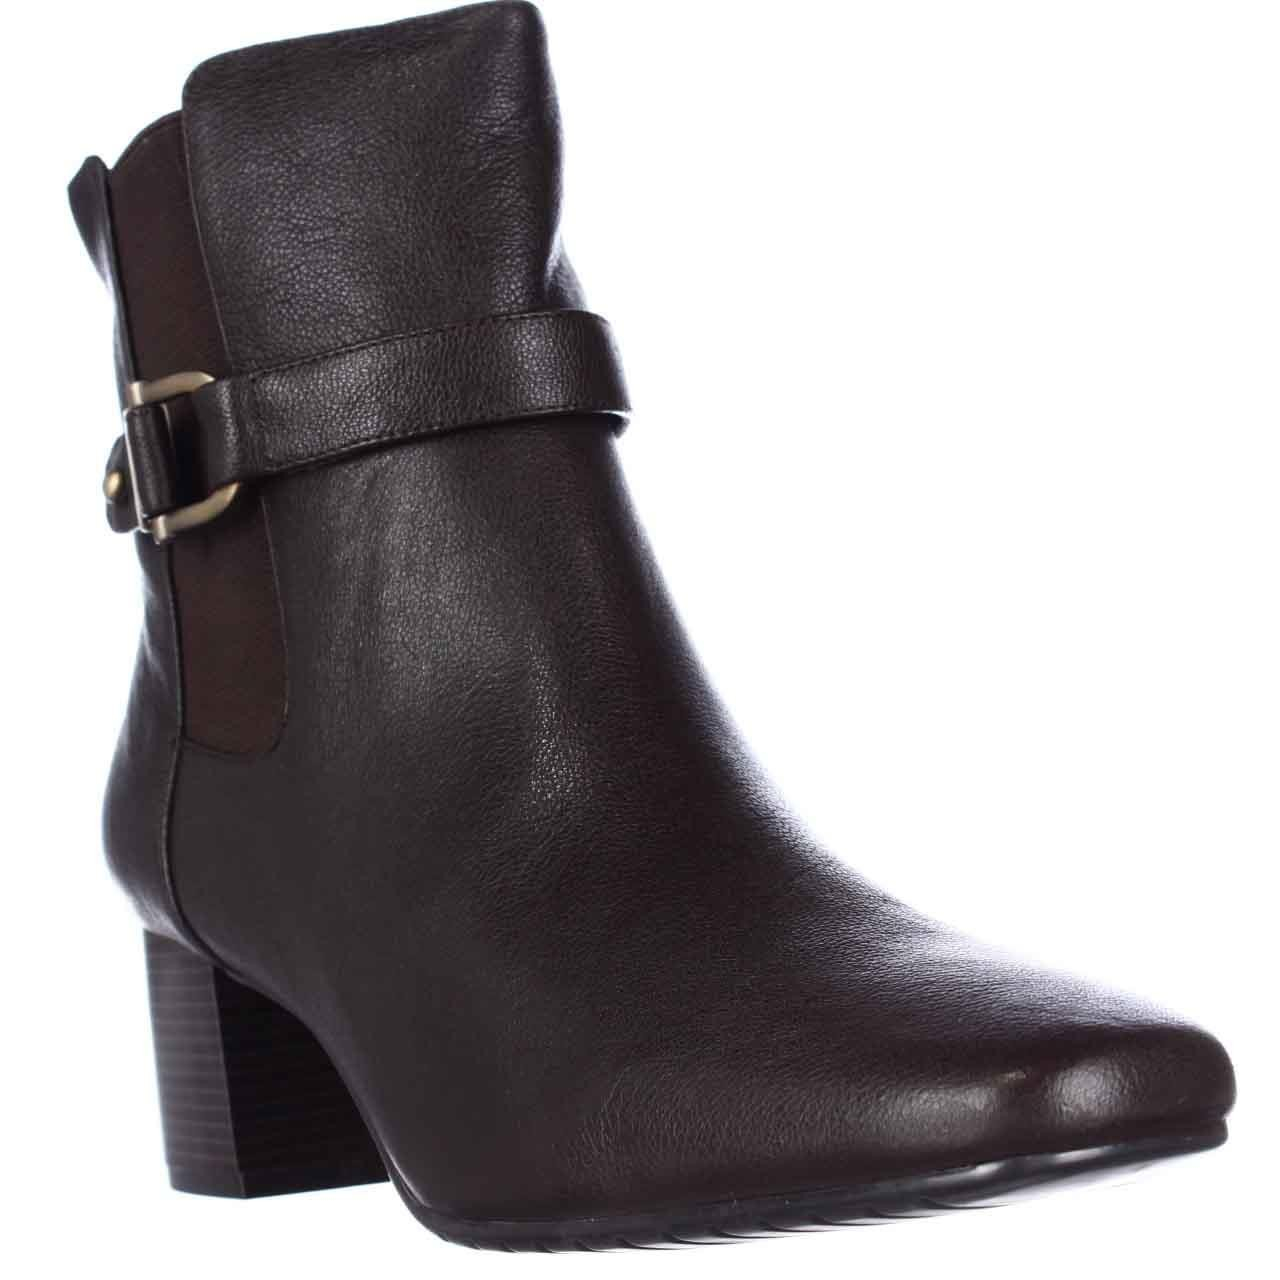 tommy hilfiger gatsbi2 casual ankle boots in brown lyst. Black Bedroom Furniture Sets. Home Design Ideas